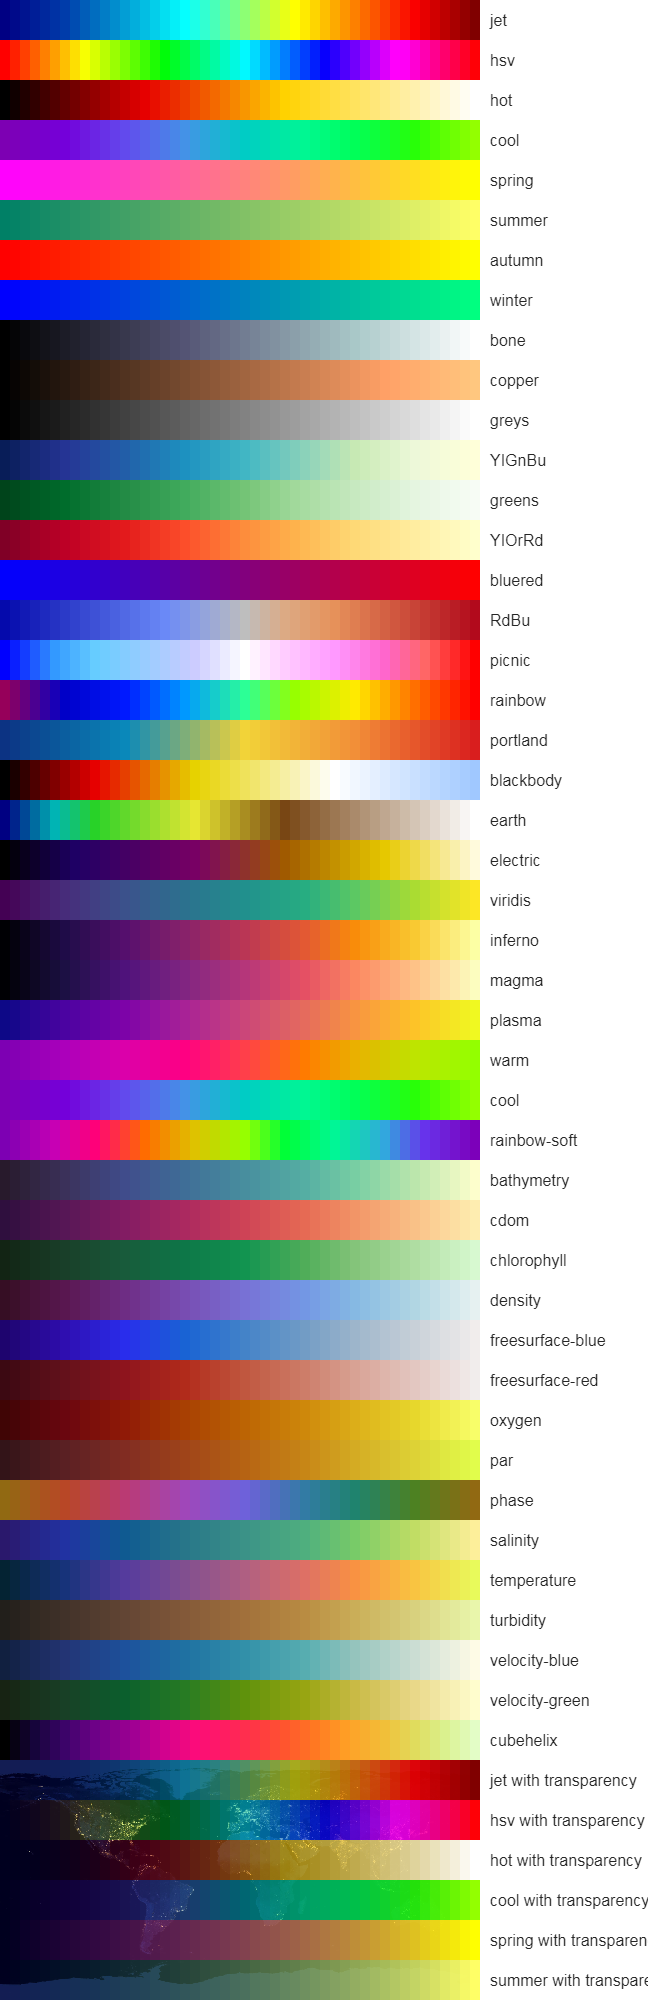 all colormap output